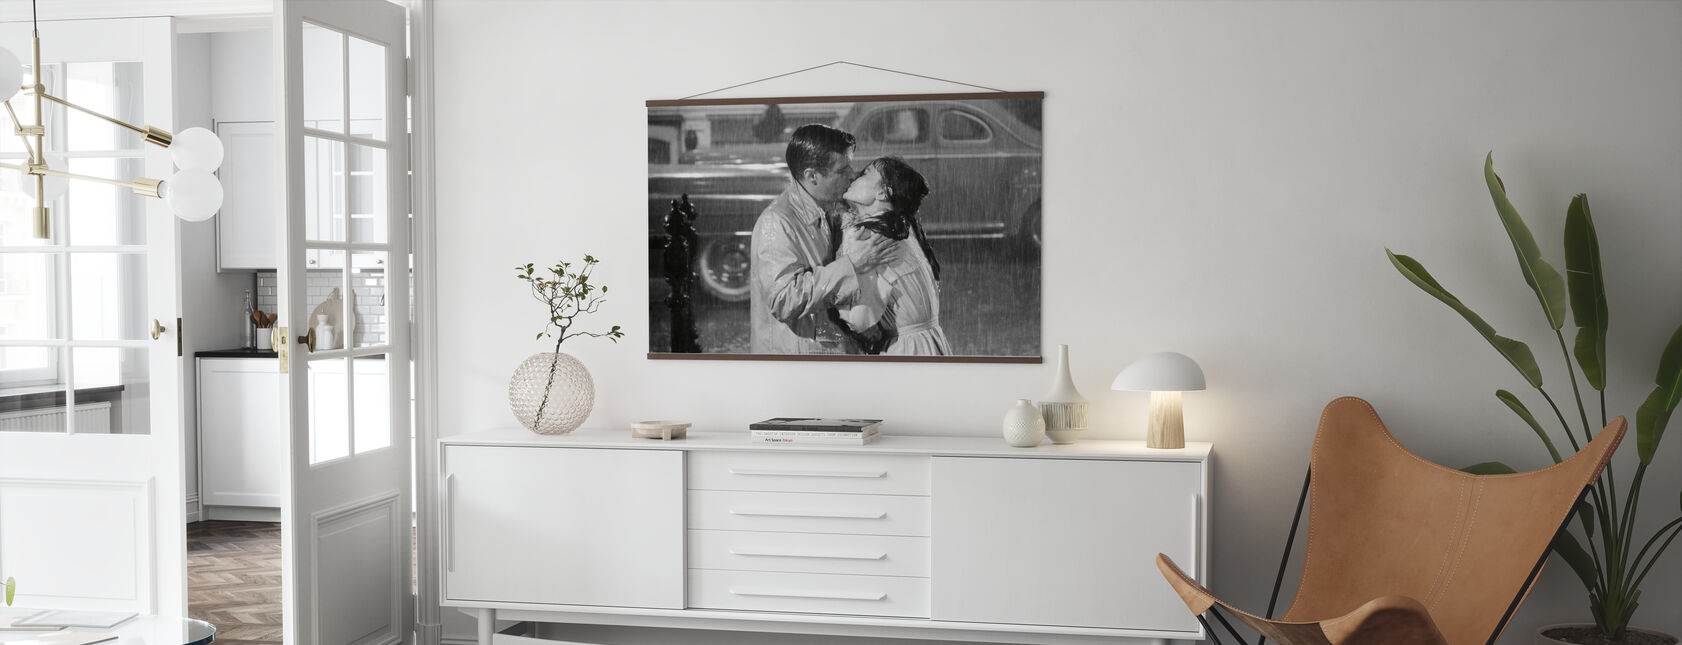 Audrey Hepburn and George Peppard in Breakfast at Tiffanys - Poster - Living Room